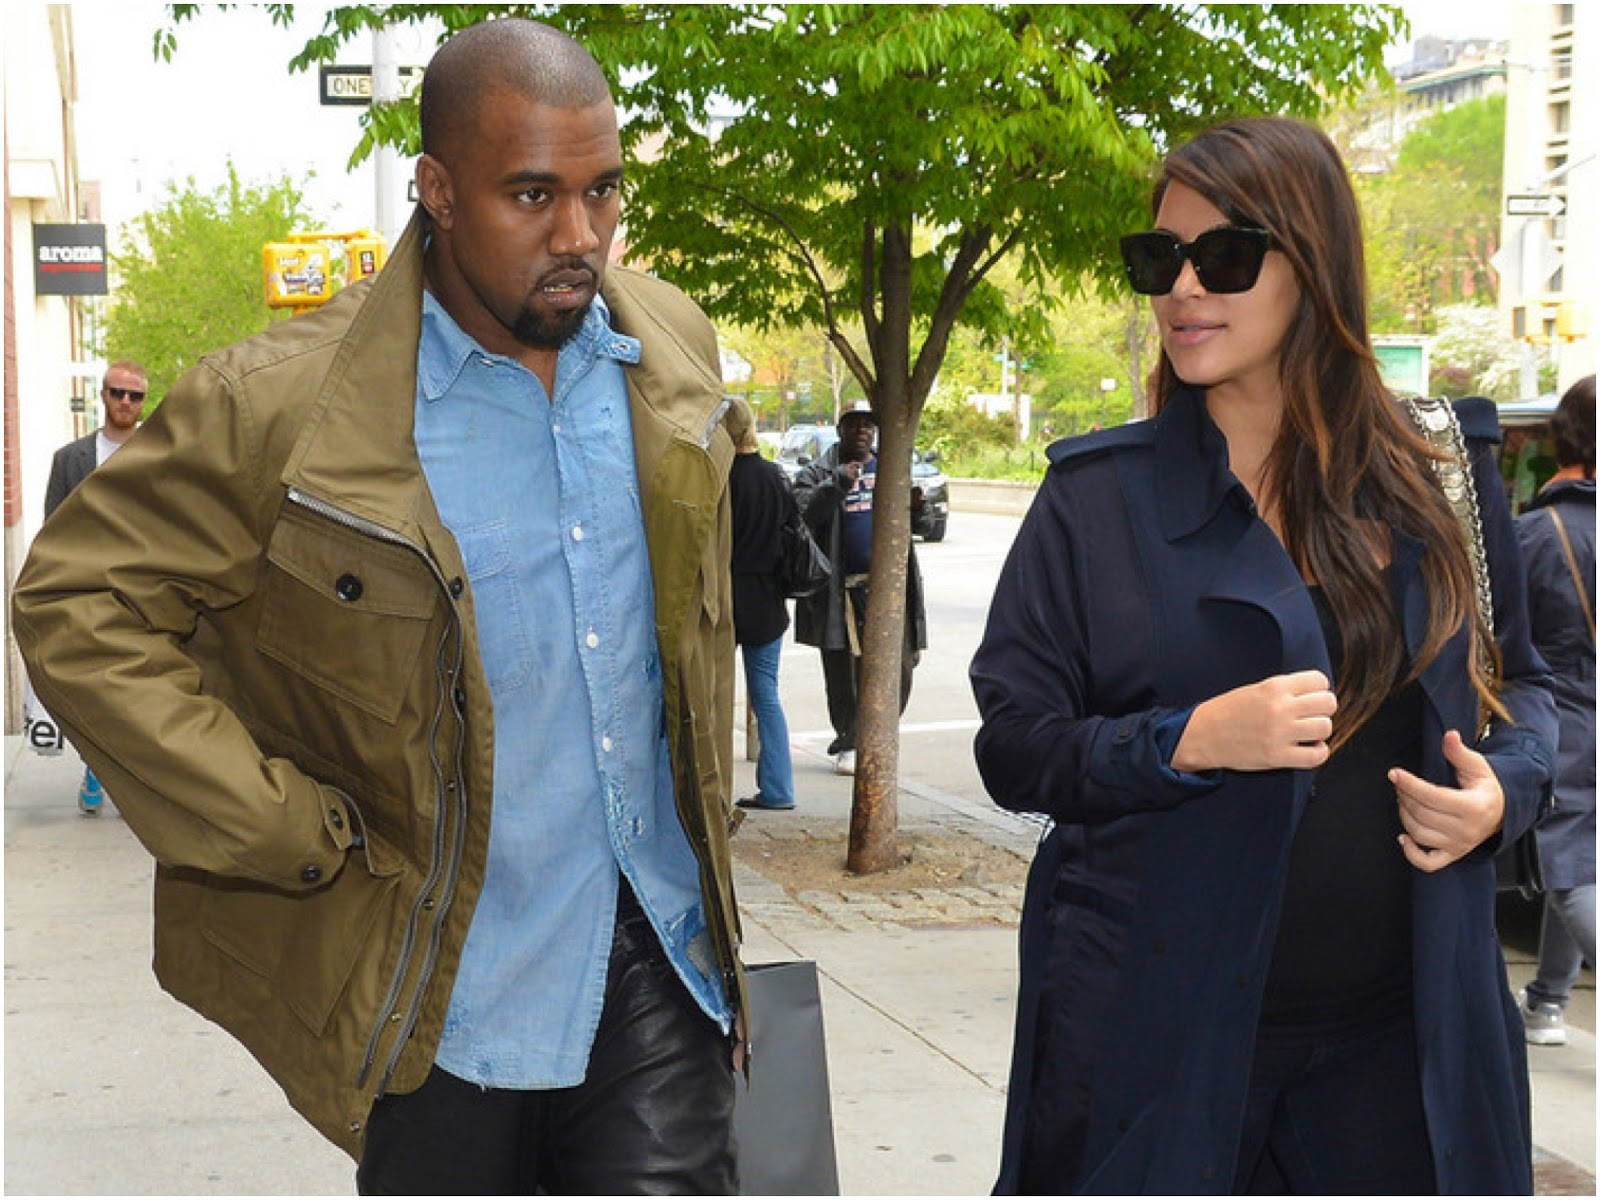 00O00 Menswear Blog: Kanye West in Burberry Prorsum menswear Pre-Spring 2013 field jacket - New York City May 2013